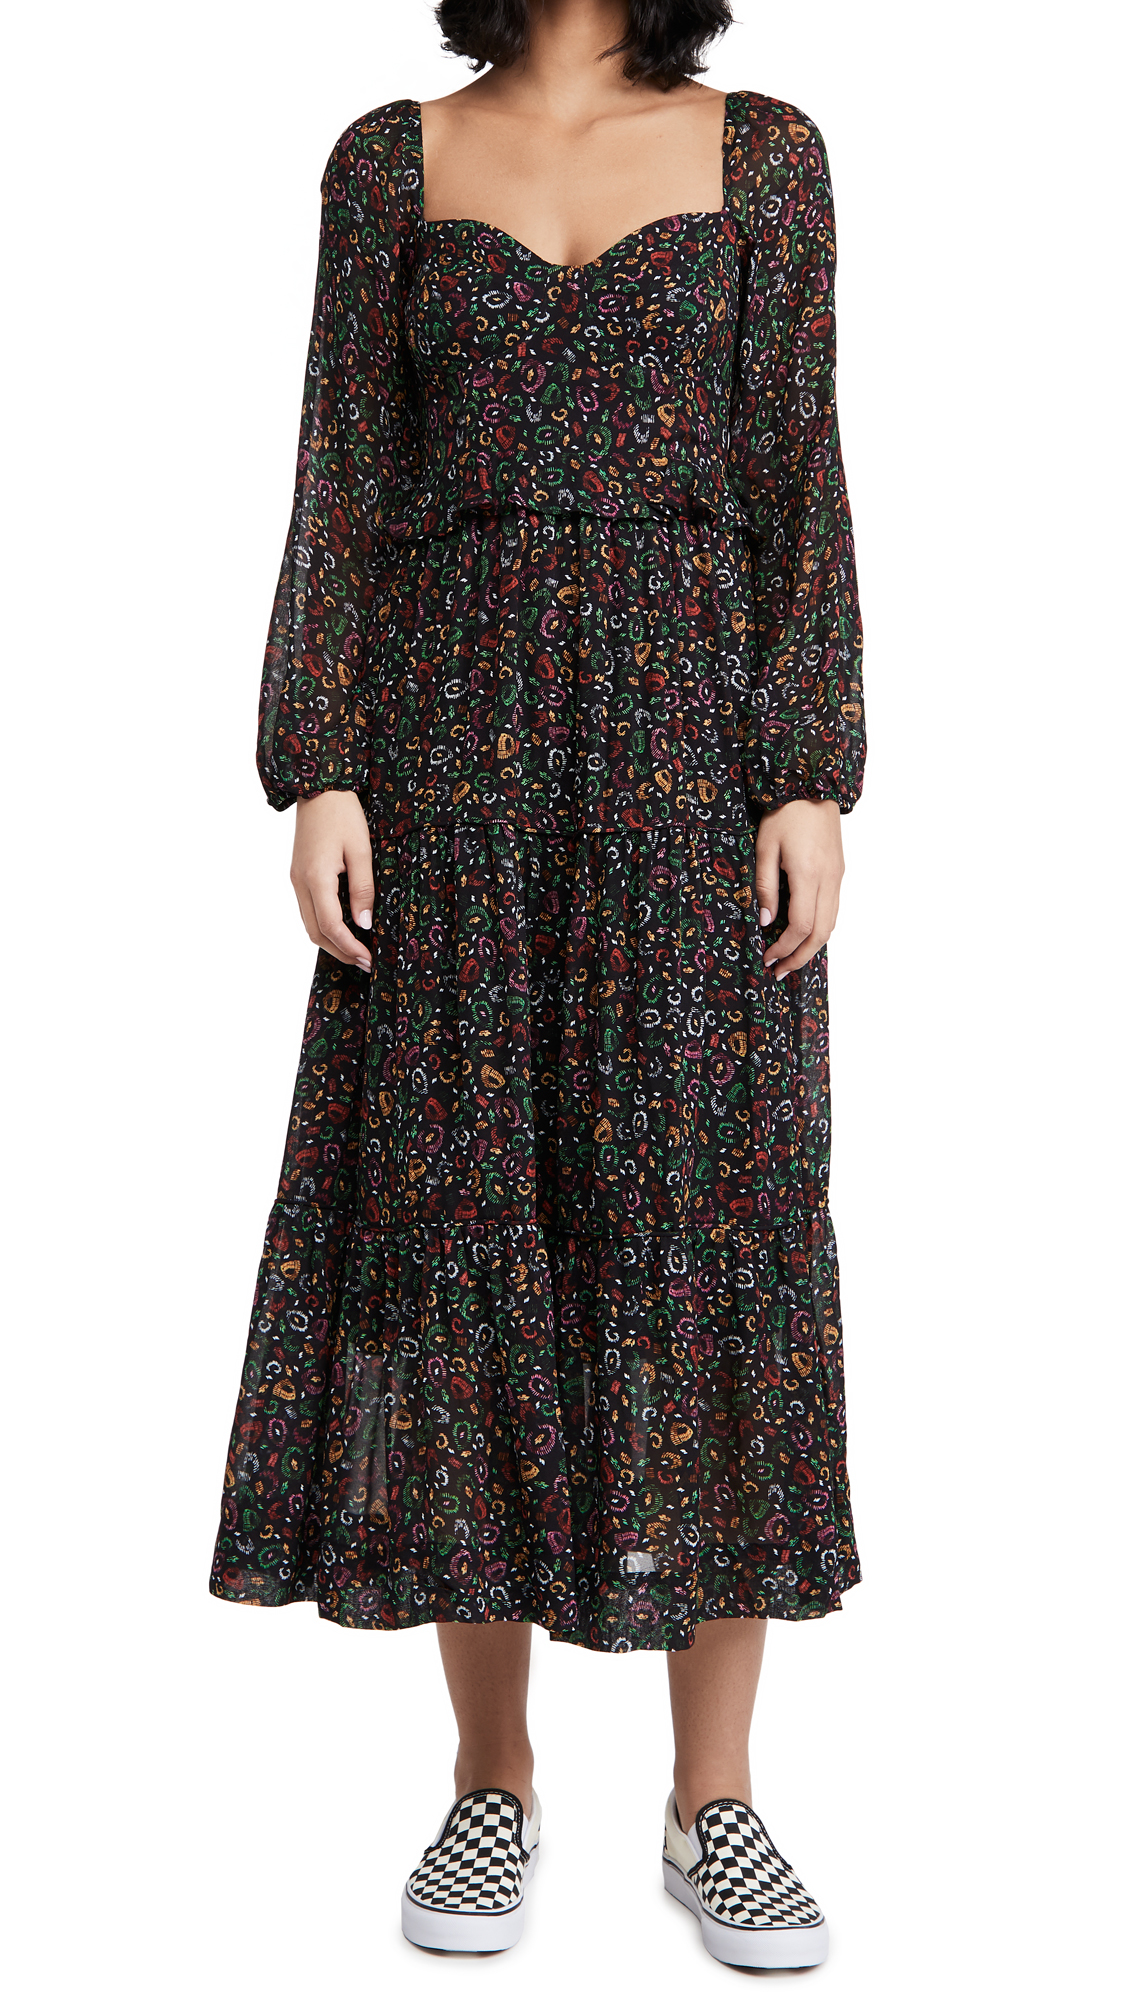 FARM Rio Borogodo Leopard Maxi Dress